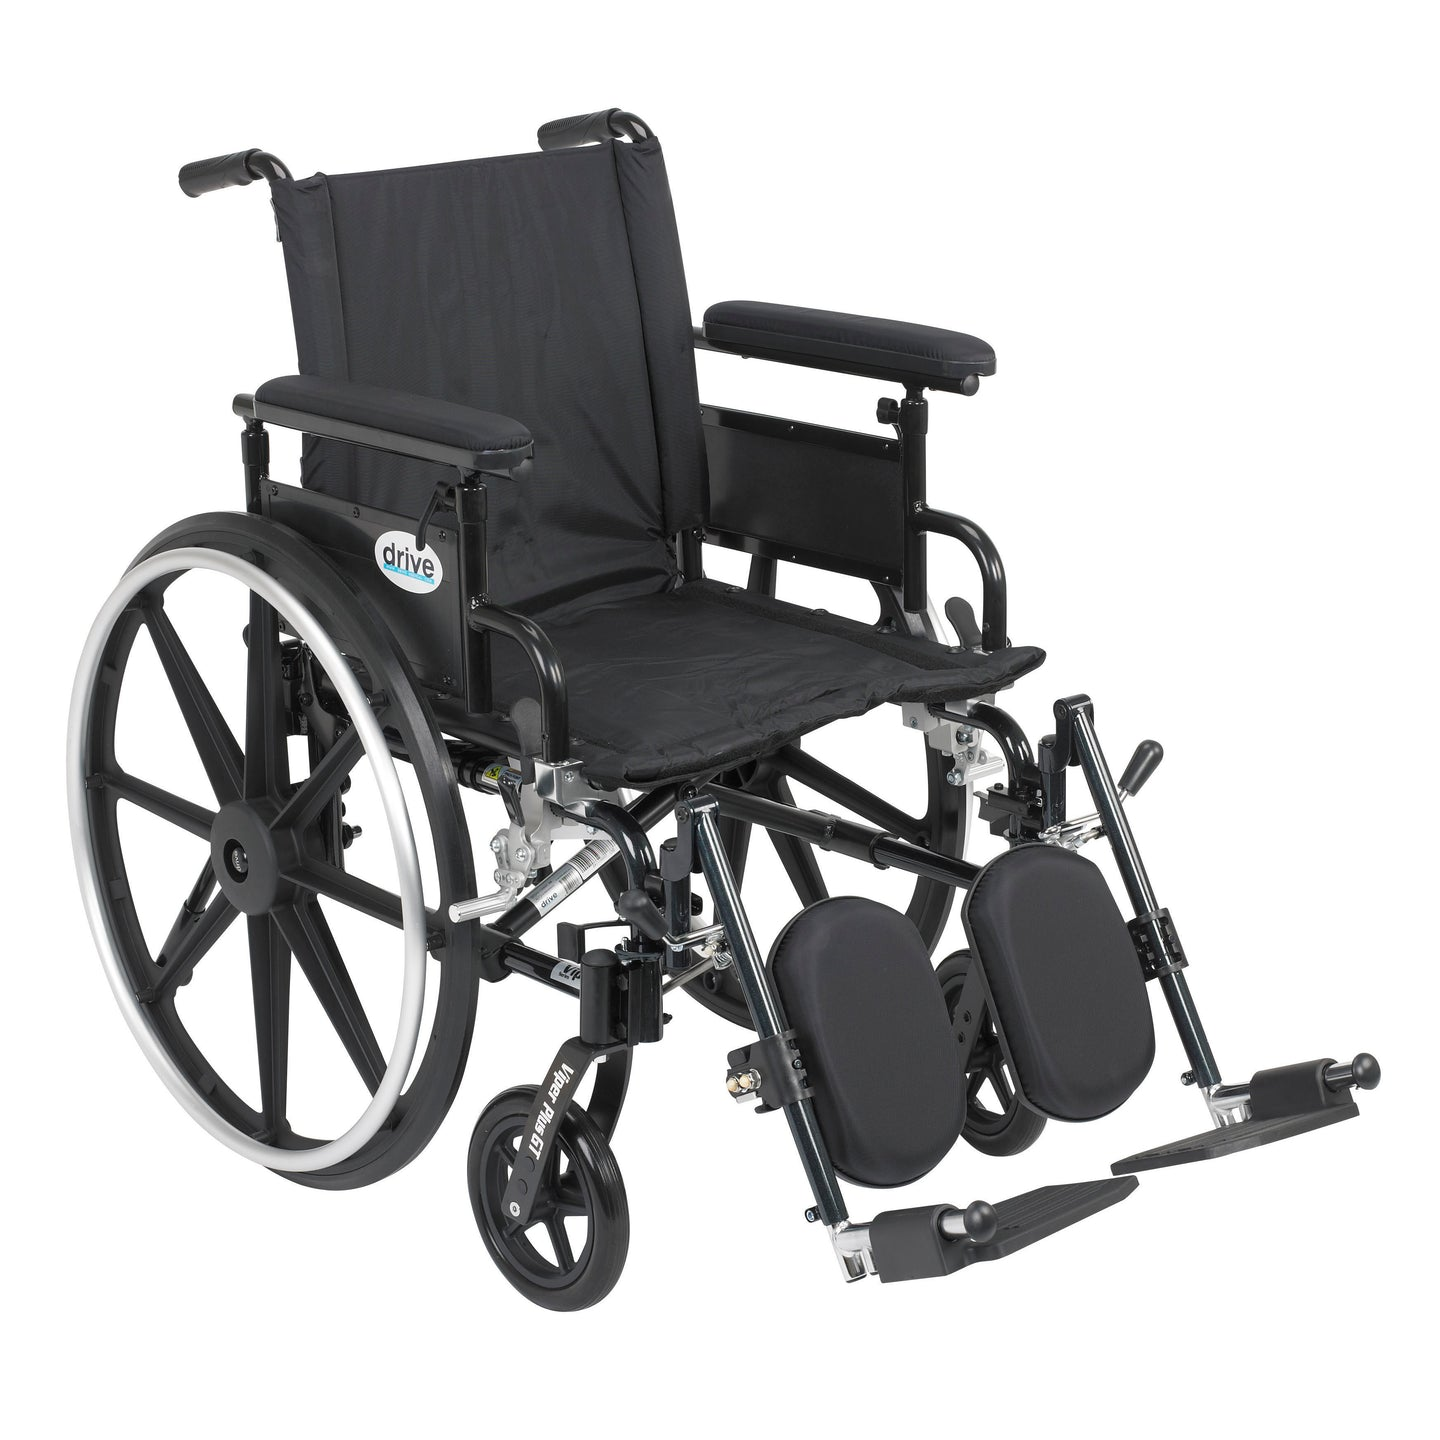 Drive Viper Plus GT Wheelchair with Flip Back Removable Adjustable Full Arms- Elevating Leg Rests- 20